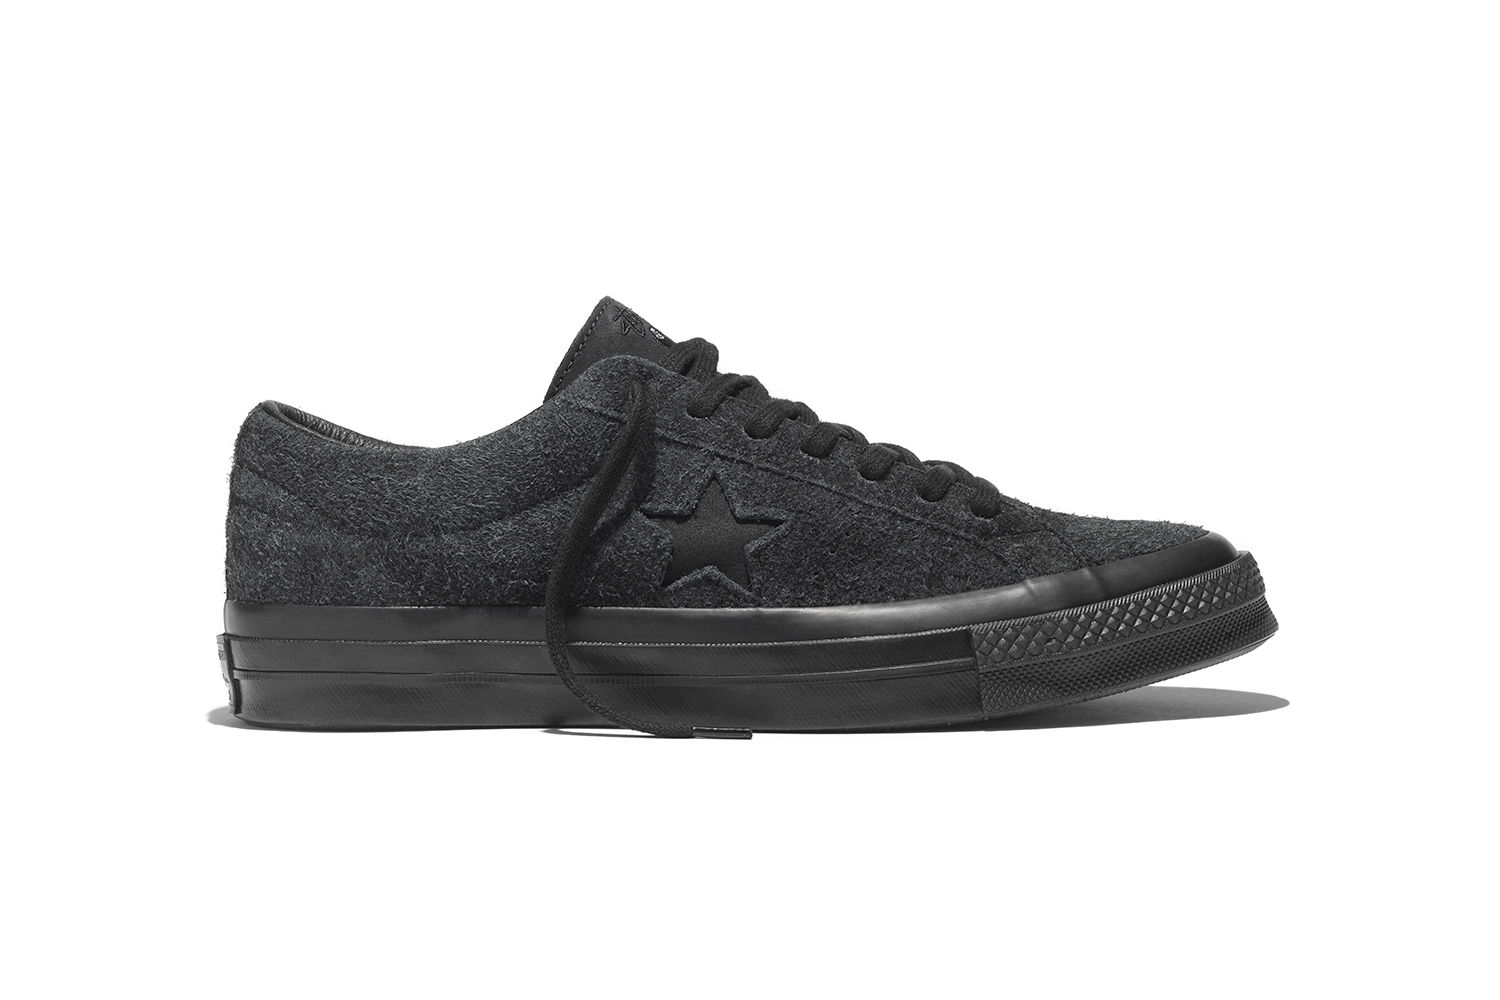 stussy-converse-one-star-74-04